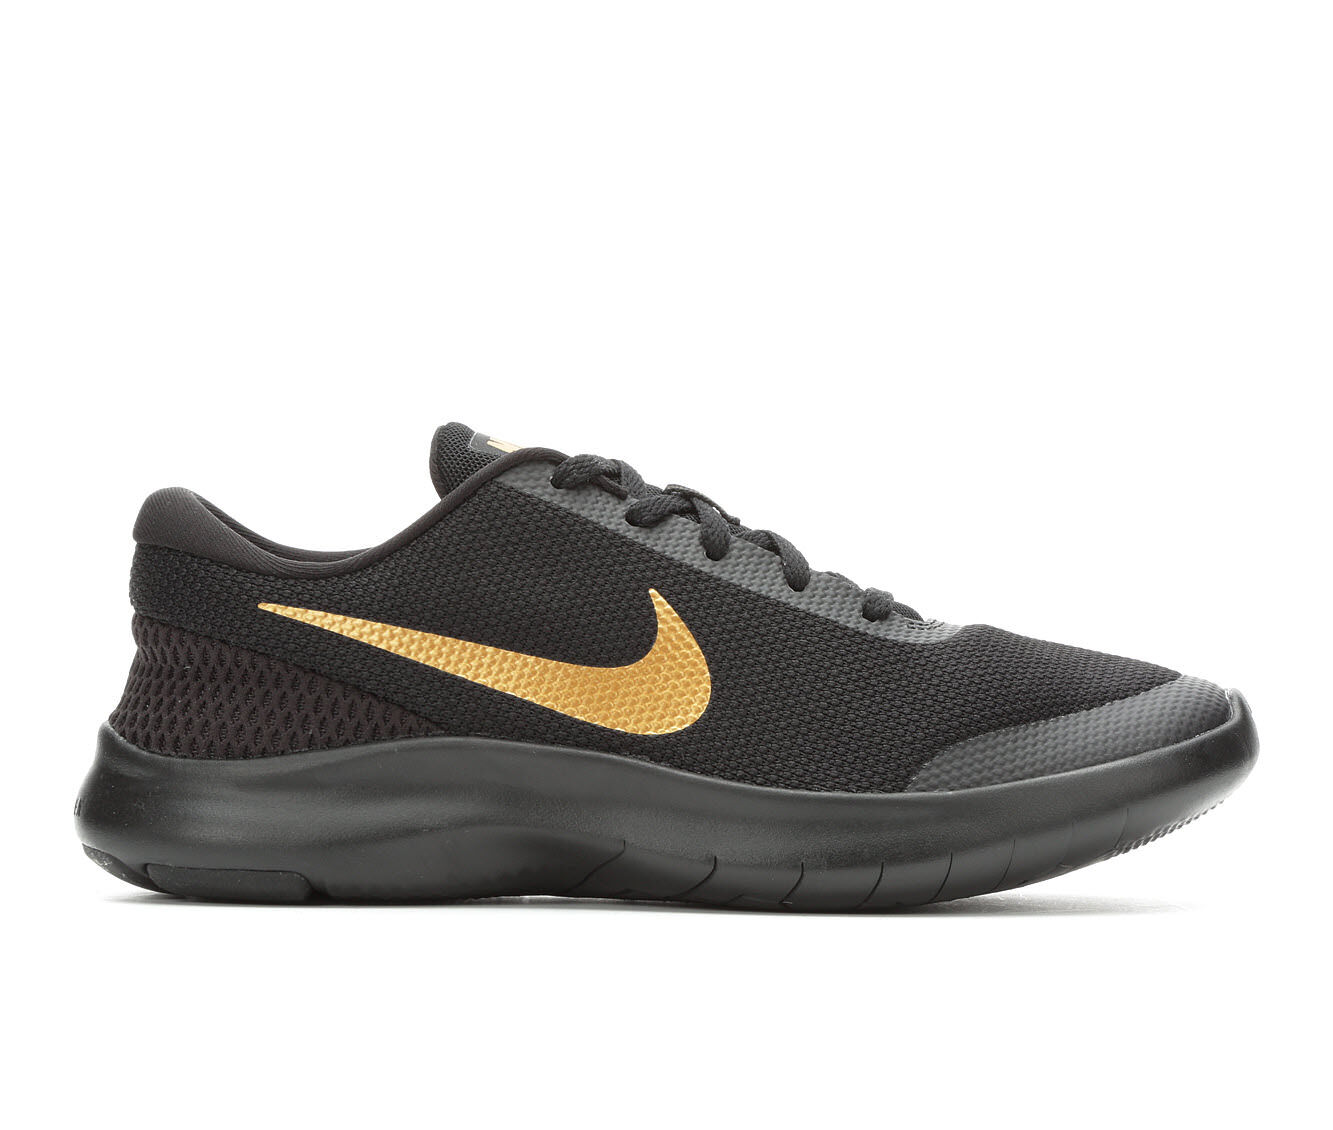 Women's Nike Flex Experience Run 7 Running Shoes